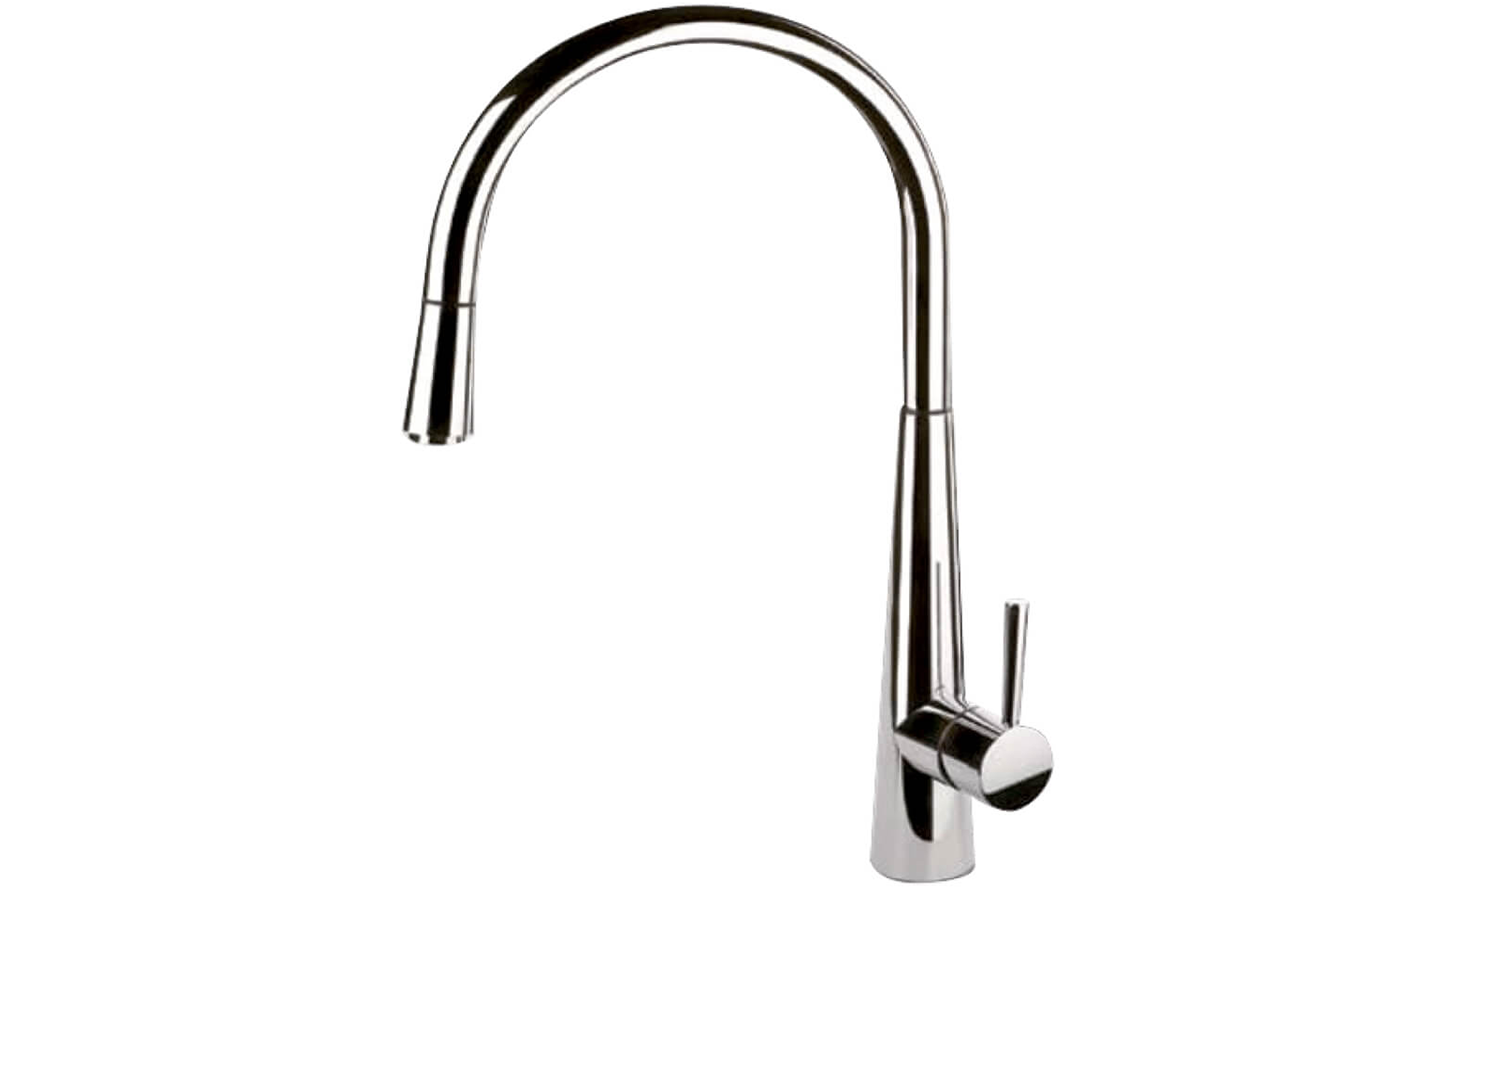 est living design directory just sink mixer pull out abey1